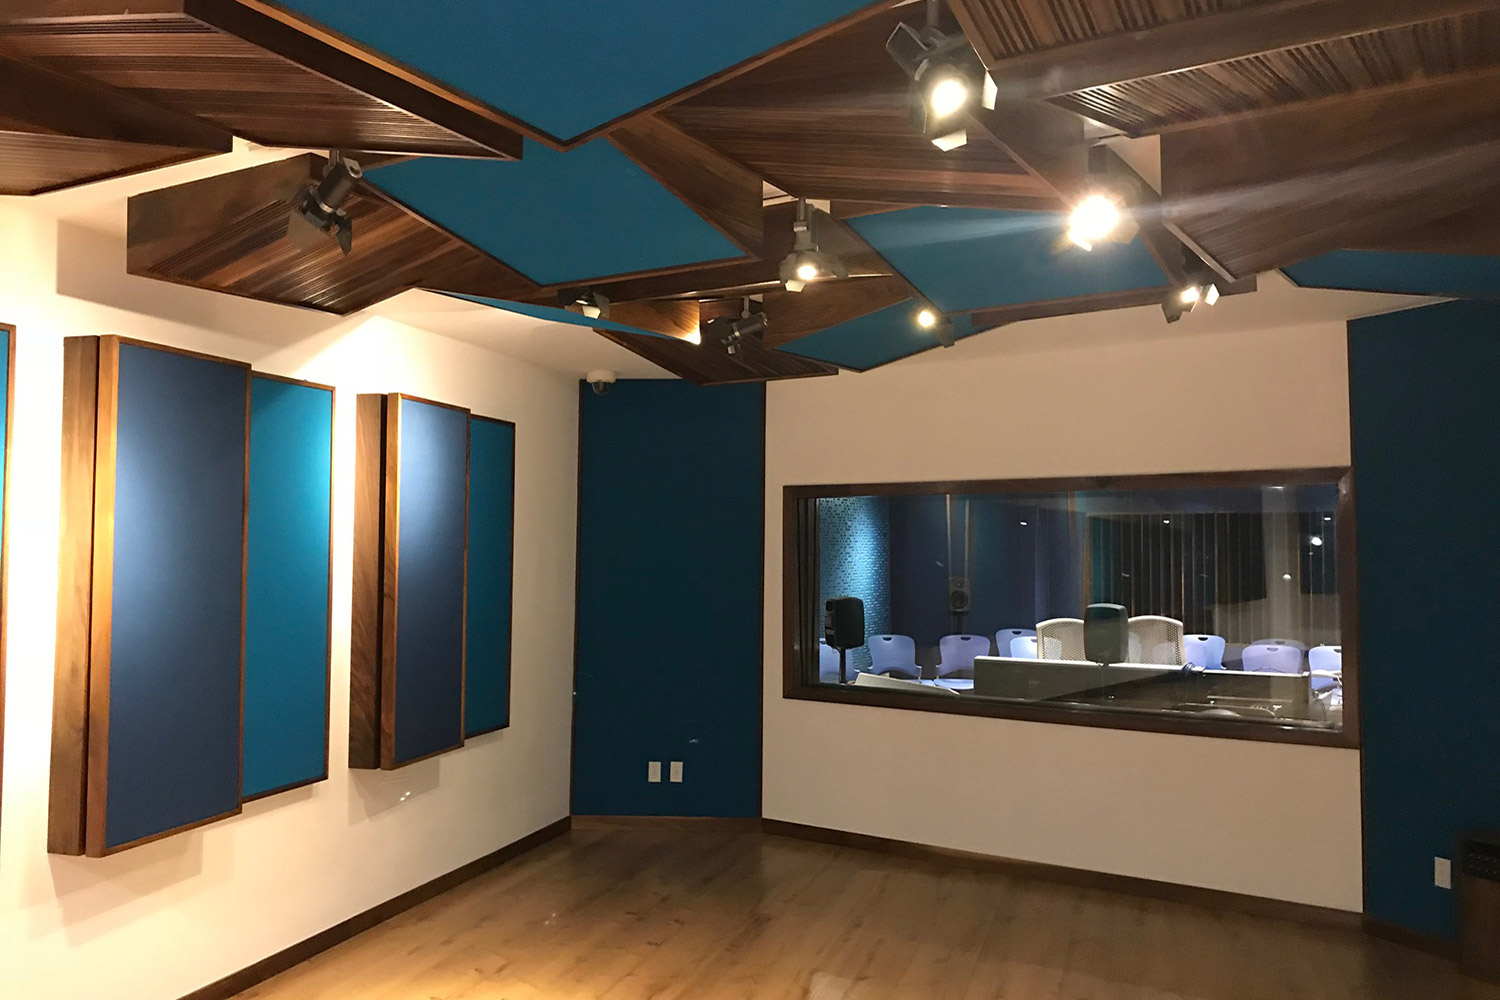 TEC de Monterrey University has grown to include 31 campuses in 25 cities throughout Mexico. A trail-blazing seat of education. After the 2017 earthquake, WSDG was reached to do the new studio design of the facility in a record time. Live Room A 2